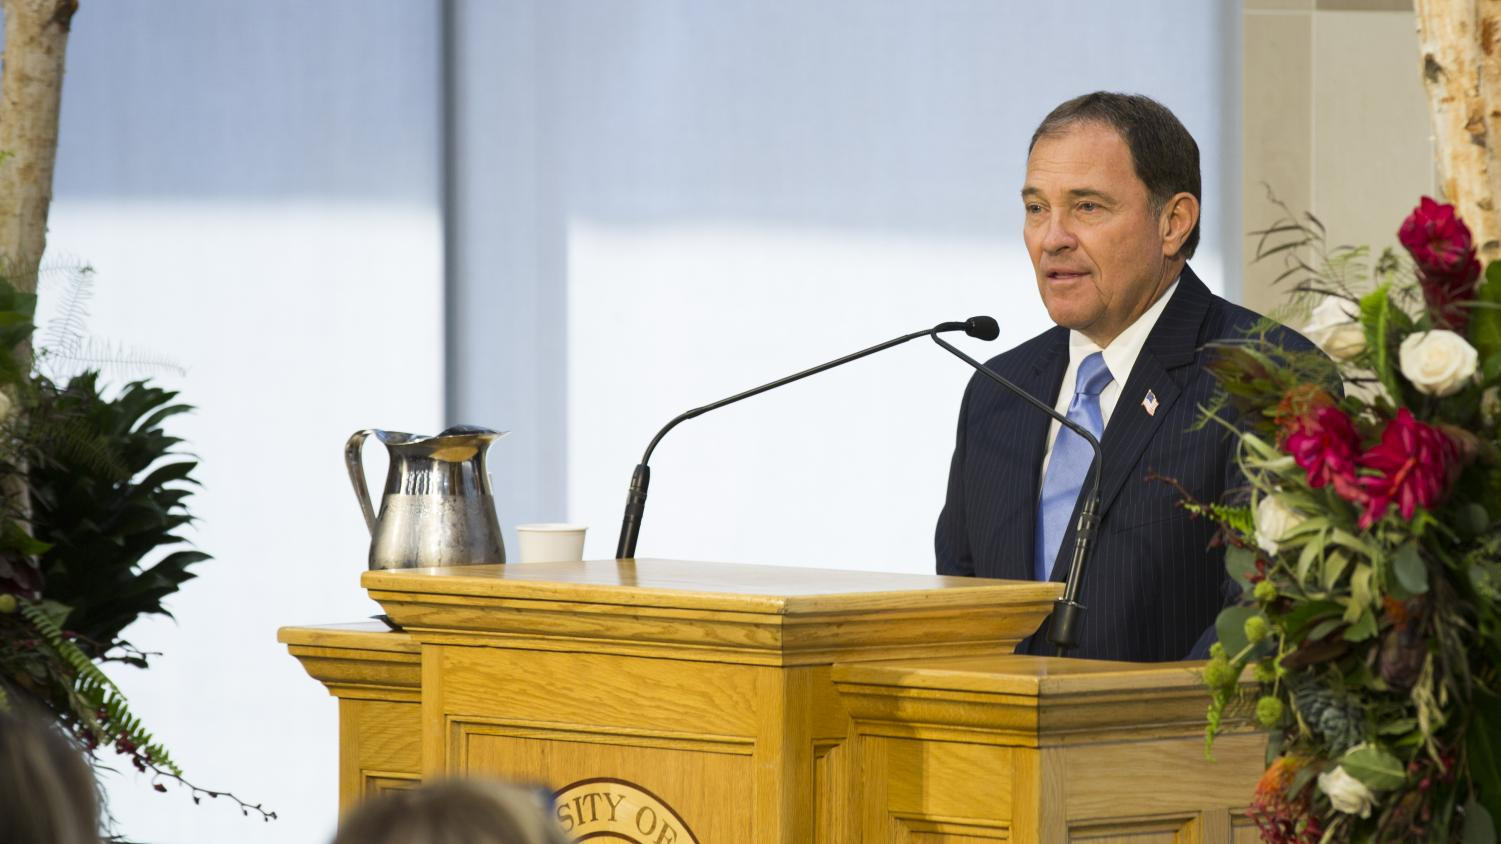 Governor Gary Herbert (R), at the dedication of the new S.J. Quinney School of Law building on Tuesday, Sept. 1, 2015   Chronicle archives